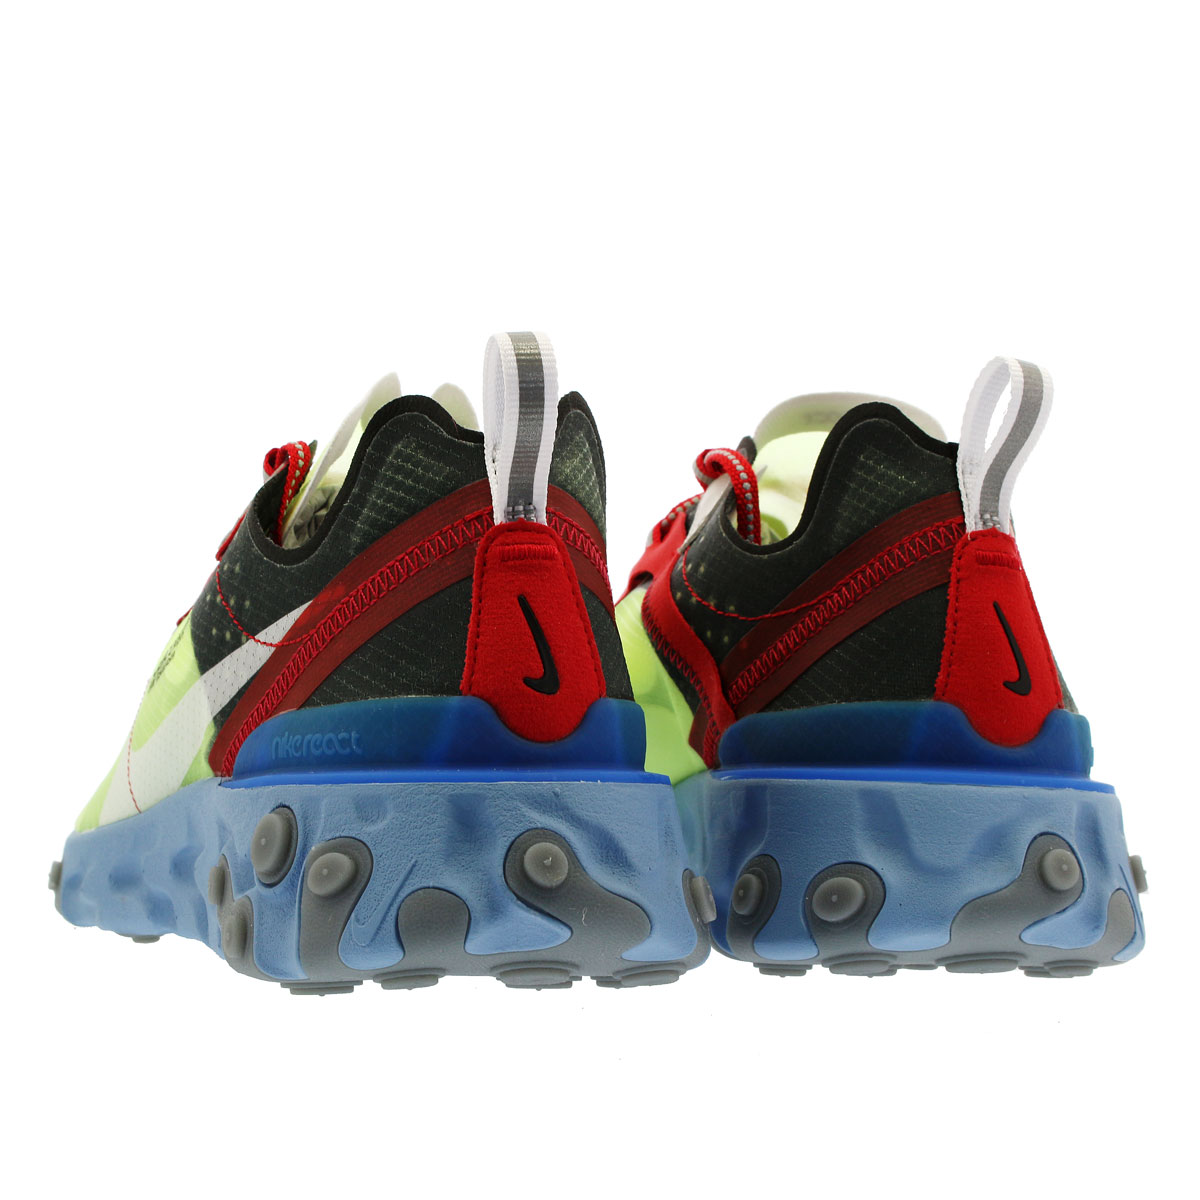 80d5ef5f5691 NIKE X UNDERCOVER REACT ELEMENT 87 Nike under cover re-act element 87 VOLT UNIVERSITY  RED BLACK WHITE SUMMIT WHITE bq2718-700